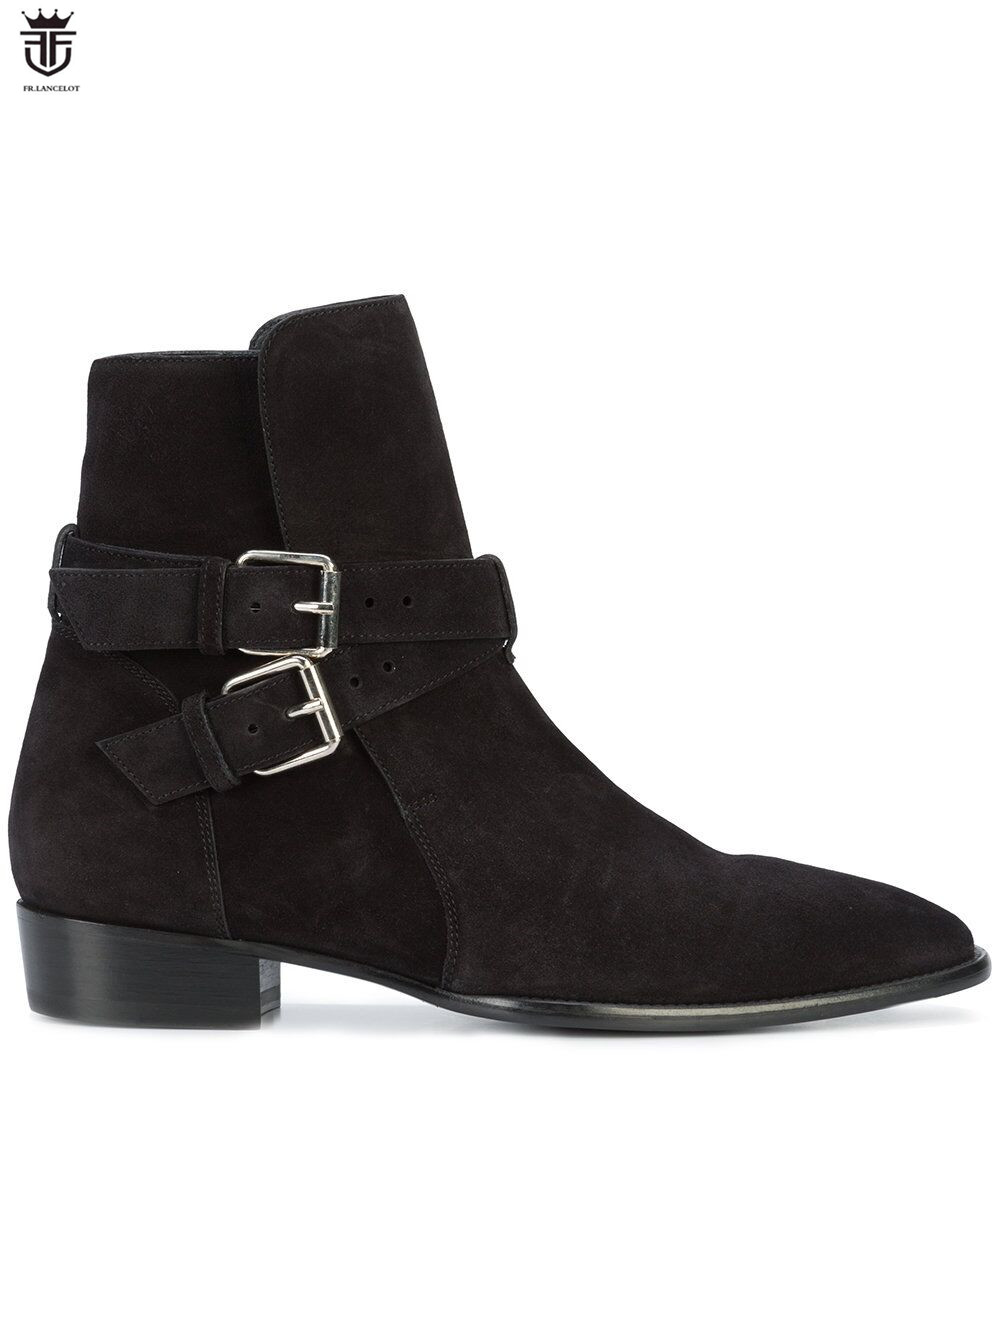 FR.LANCELOT 2018 Ankle Boots High end suede leather boot British Style Men buckle Short Boots slip on casual men